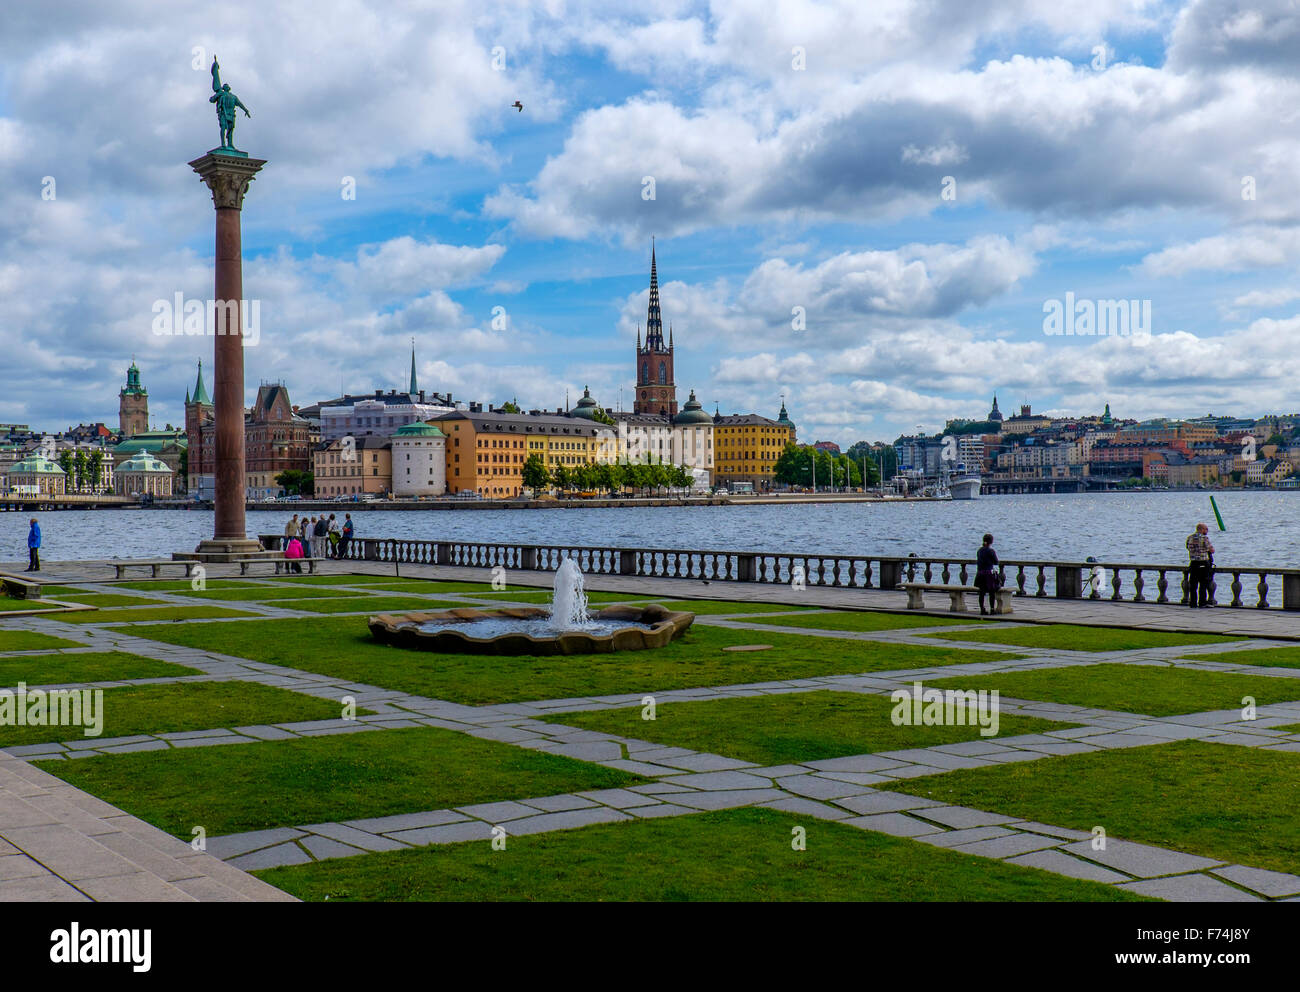 A view from the City Hall in Stockholm,Sweden - Stock Image